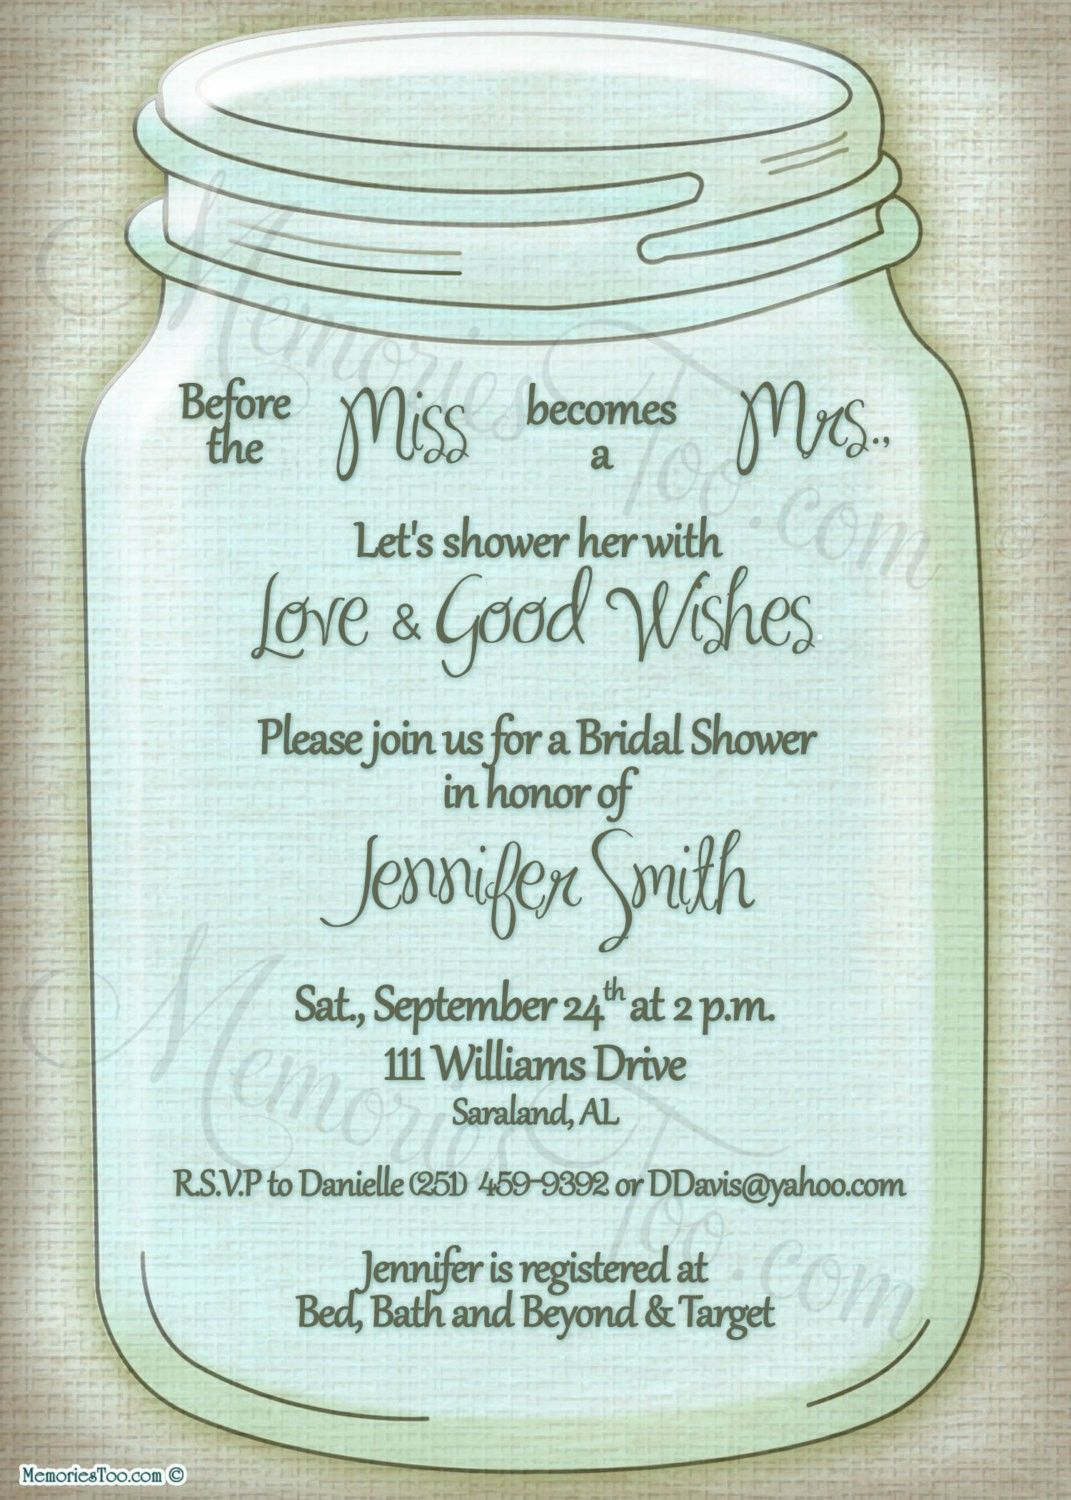 Mason Jar Shower Invitations Printable Free Printable Wedding Invitation Mason Jar Wedding Invitations Mason Jar Bridal Shower Mason Jar Invitations Template